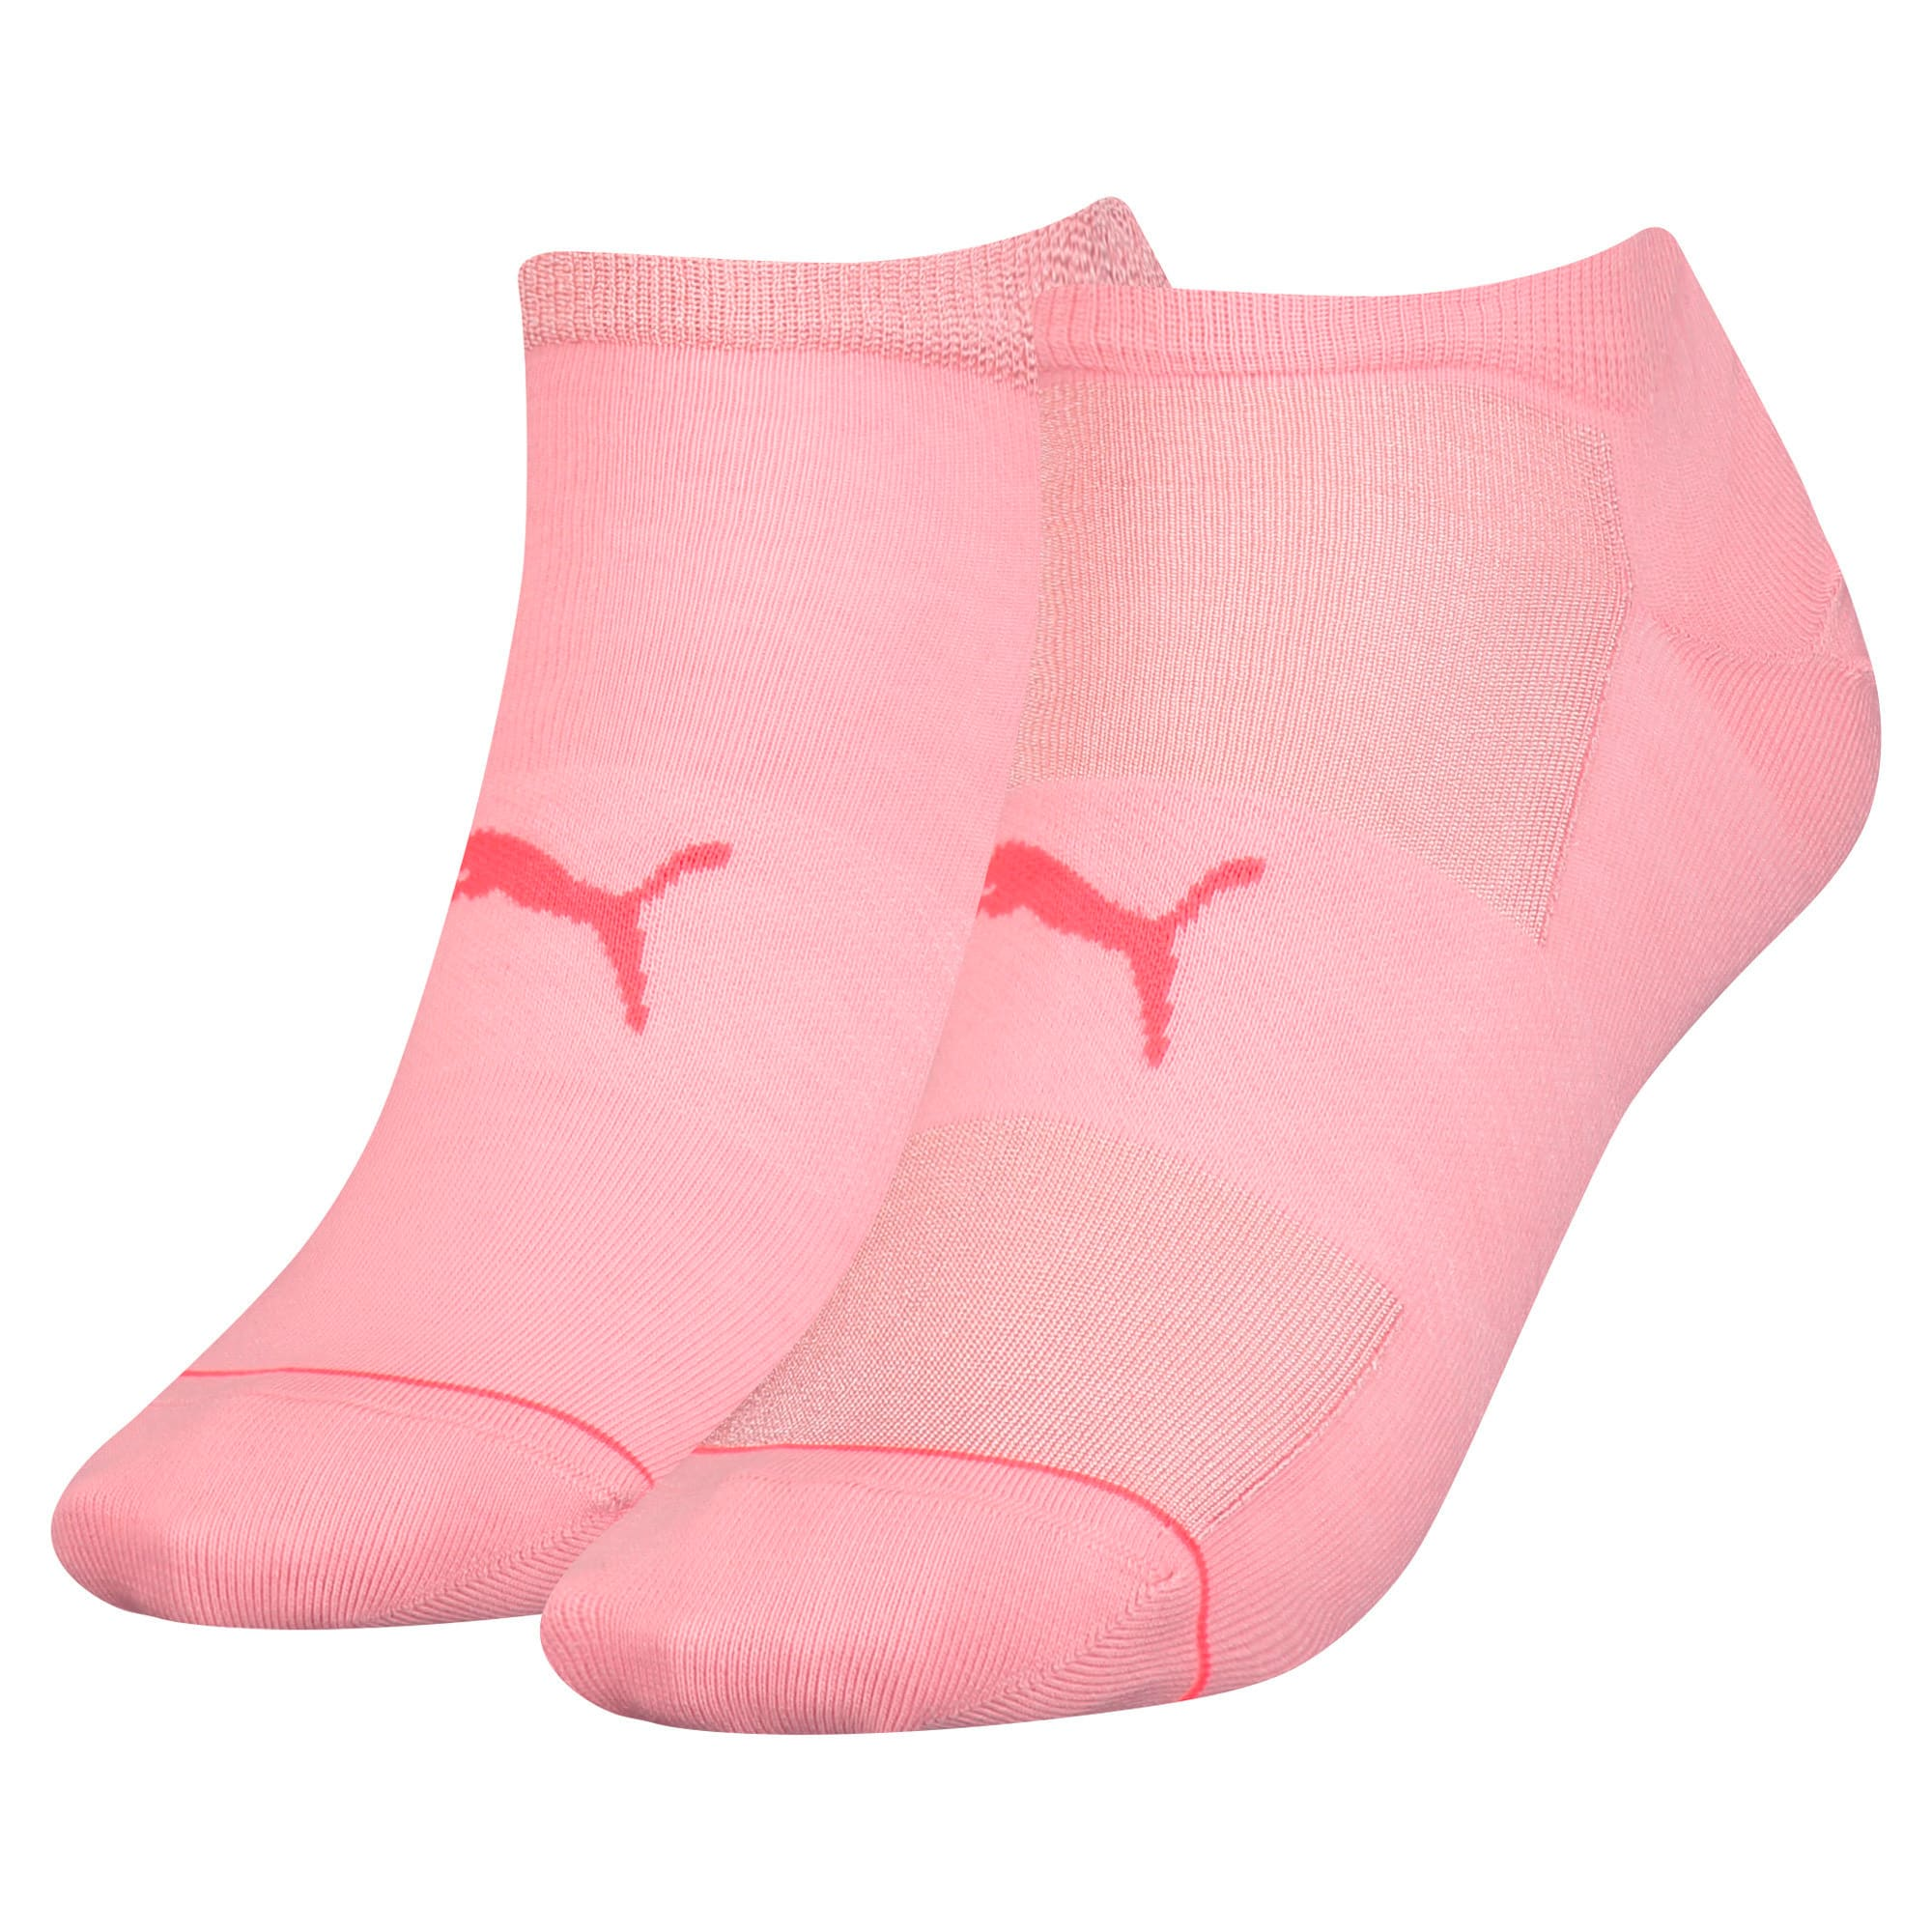 Thumbnail 1 of Radiant Women's Trainers Socks 2 Pack, rose water, medium